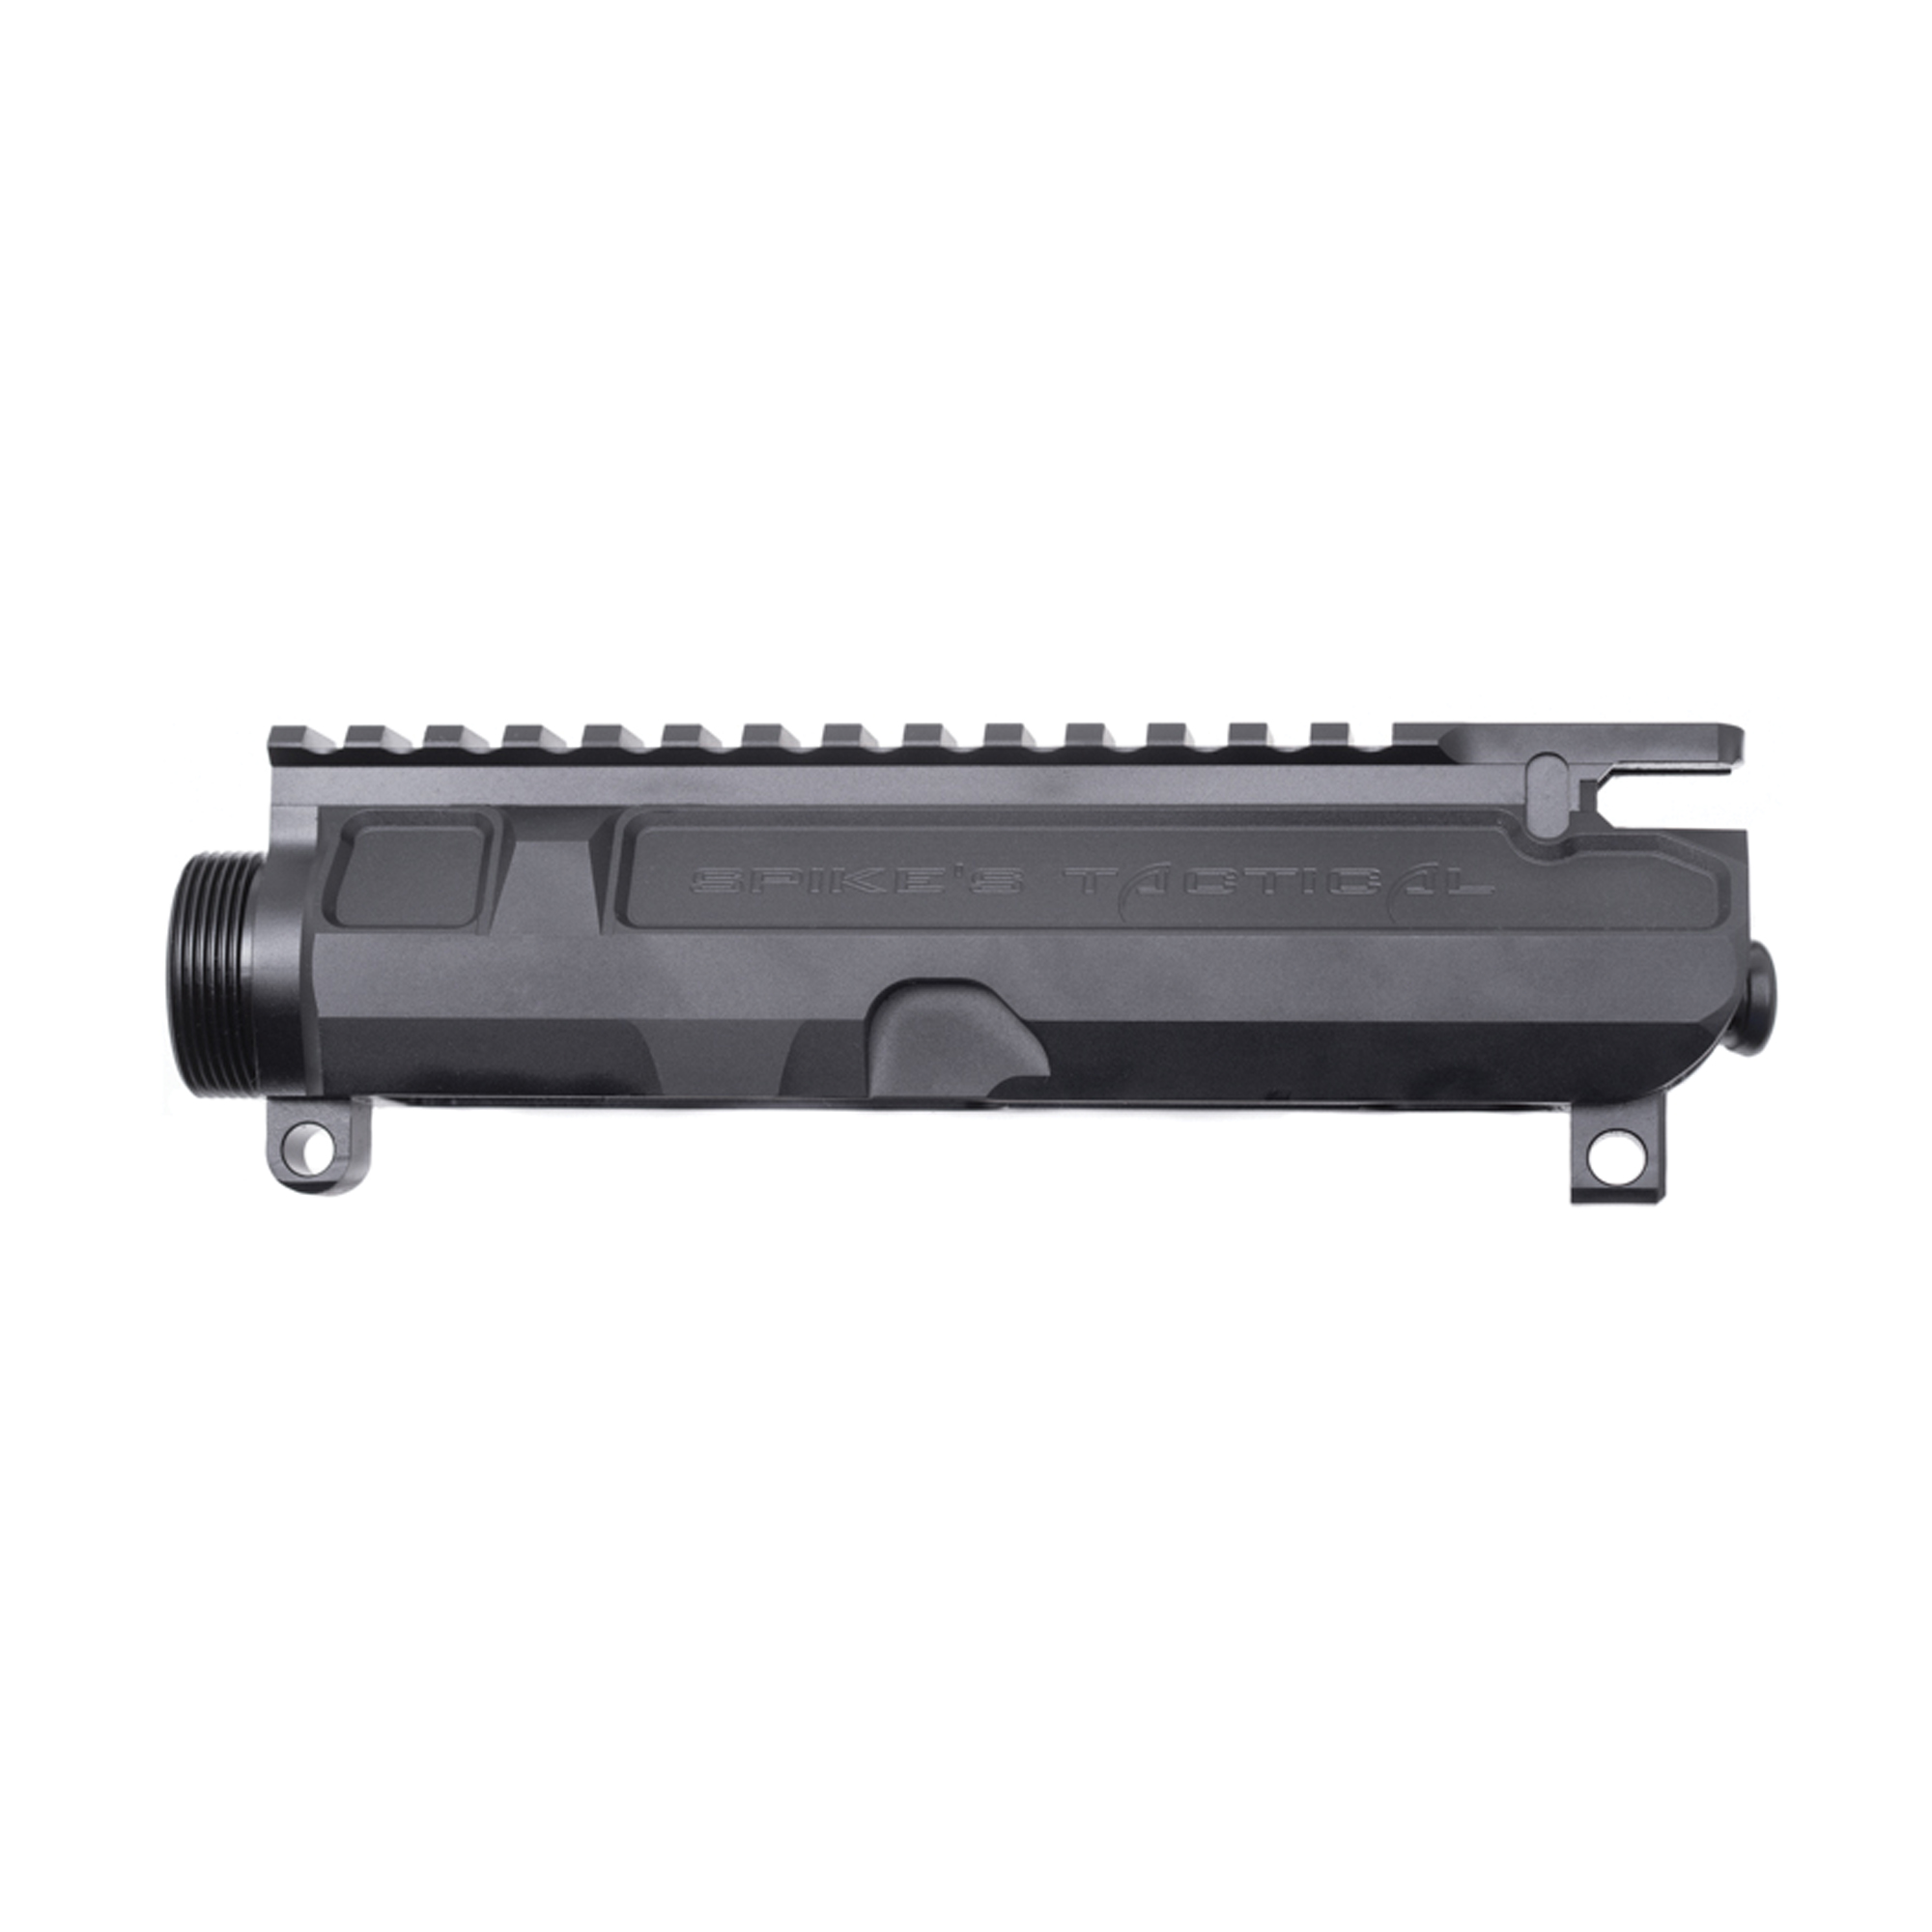 Spike's Tactical AR-15 Gen II Billet Stripped Upper Receiver Aluminum Black Anodized Finish